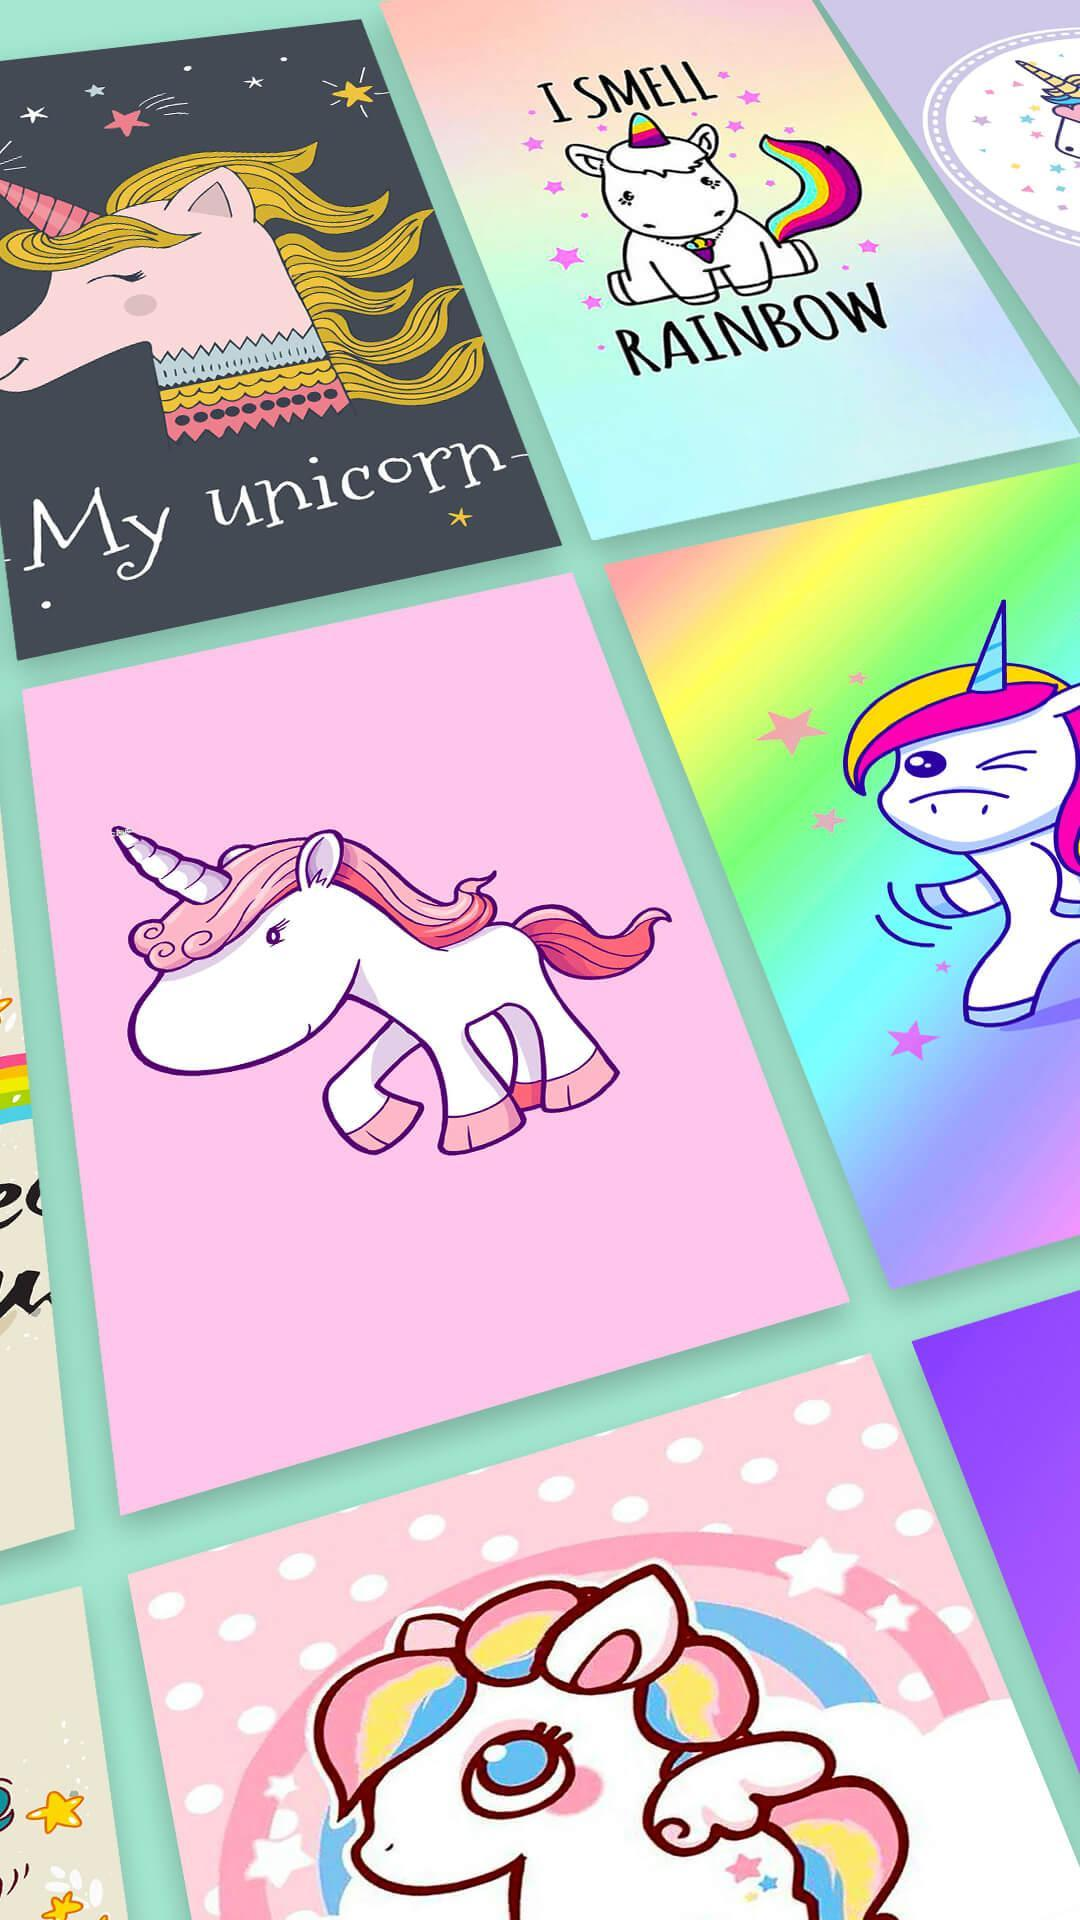 Kawaii Unicorn Wallpaper bronies for Android   APK Download 1080x1920